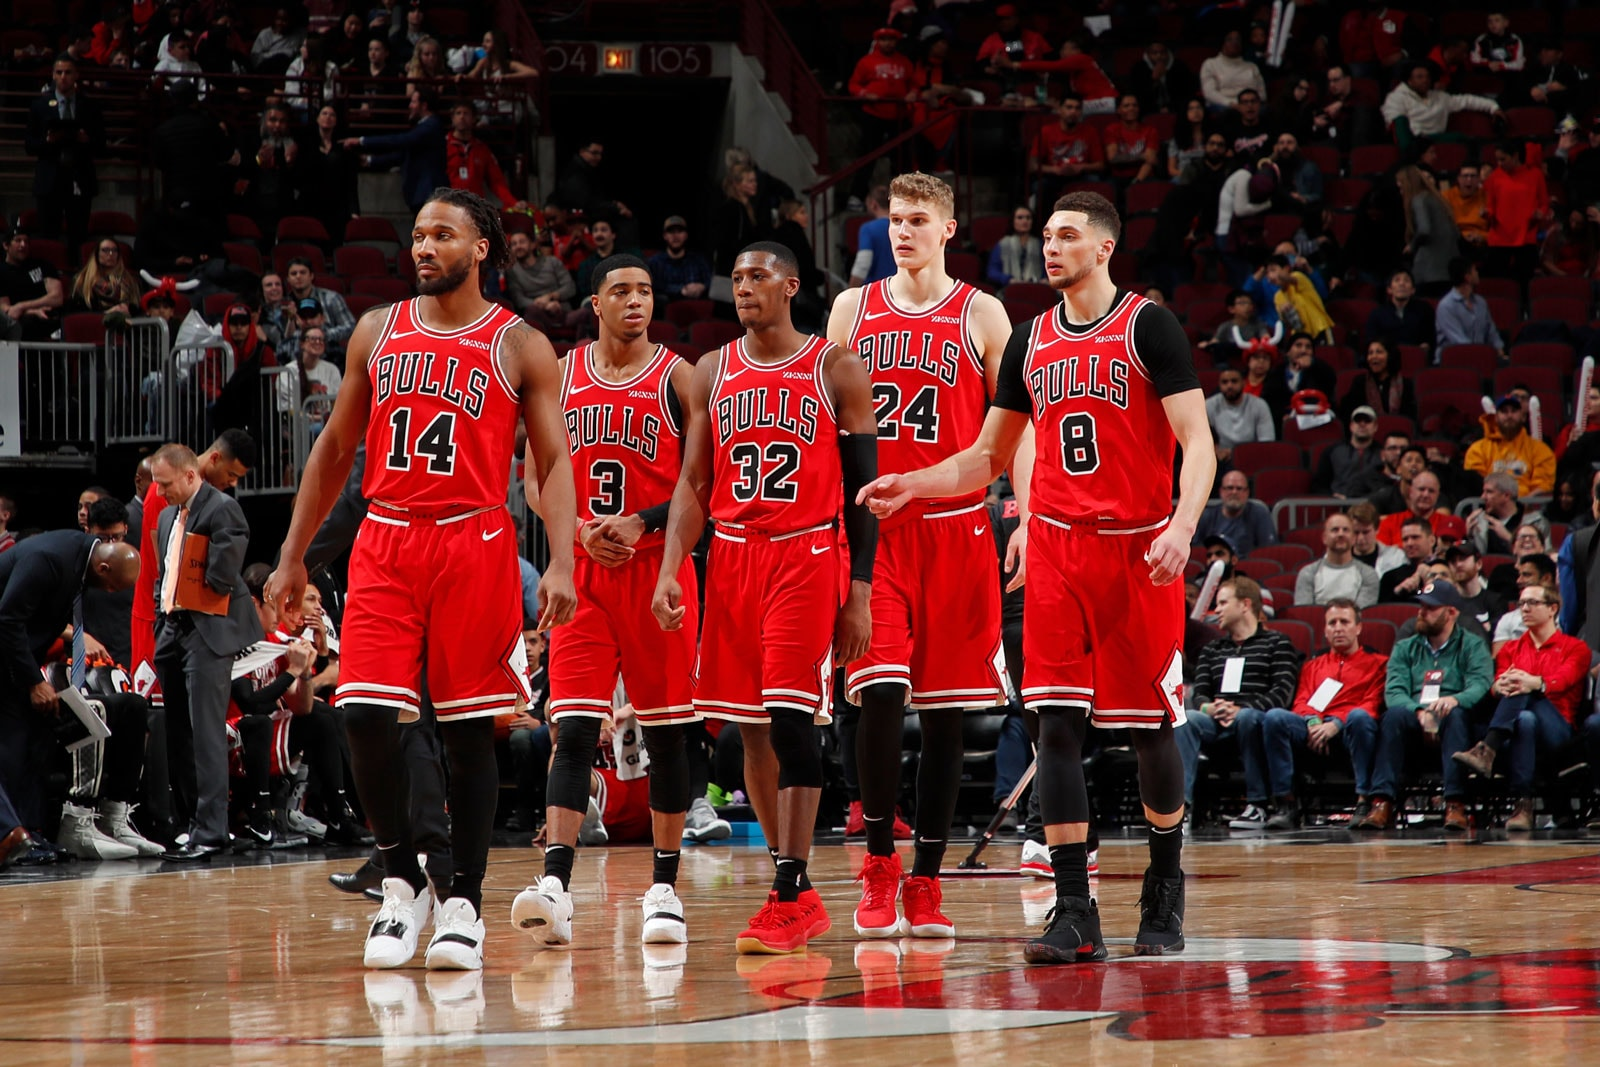 Wayne Seldon #14, Shaquille Harrison #3, Kris Dunn #32, Lauri Markkanen #24, and Zach LaVine #8 of the Chicago Bulls walk up the court during the game against the New Orleans Pelicans on February 6, 2019 at United Center in Chicago, Illinois.